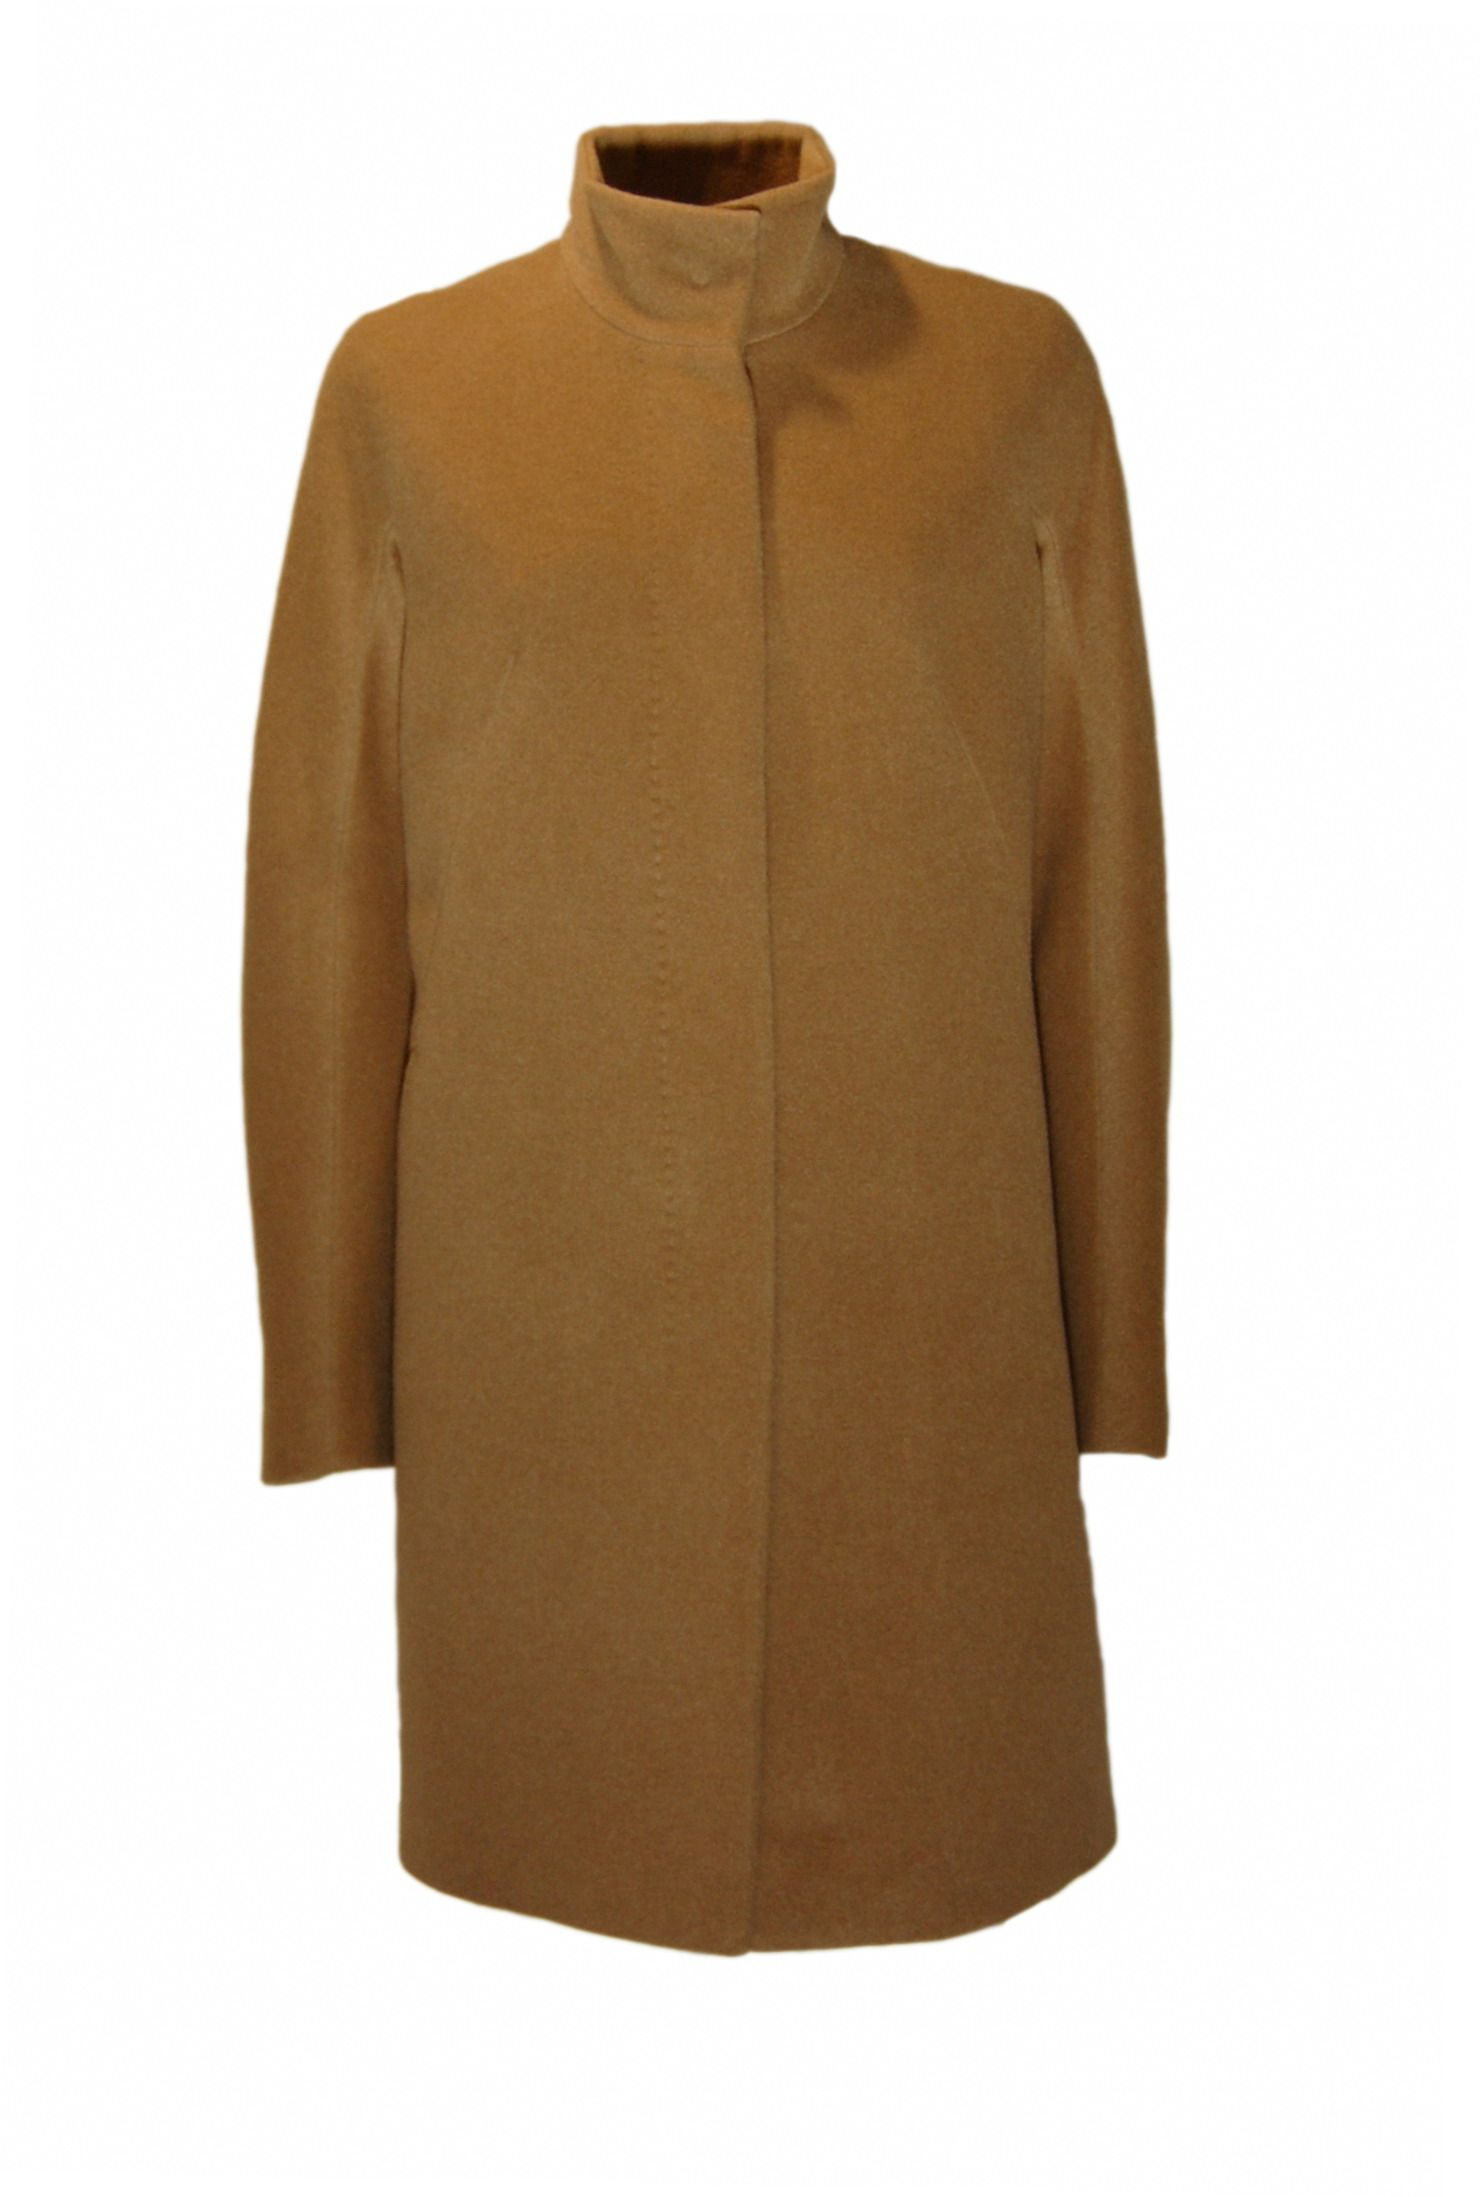 Max Mara Studio Cappotto URANIO Colore Cammello - Max Mara Studio Coat  URANIO  maxmarastudio  coat  shopping  fashion  cappotti 4a9e25918c2